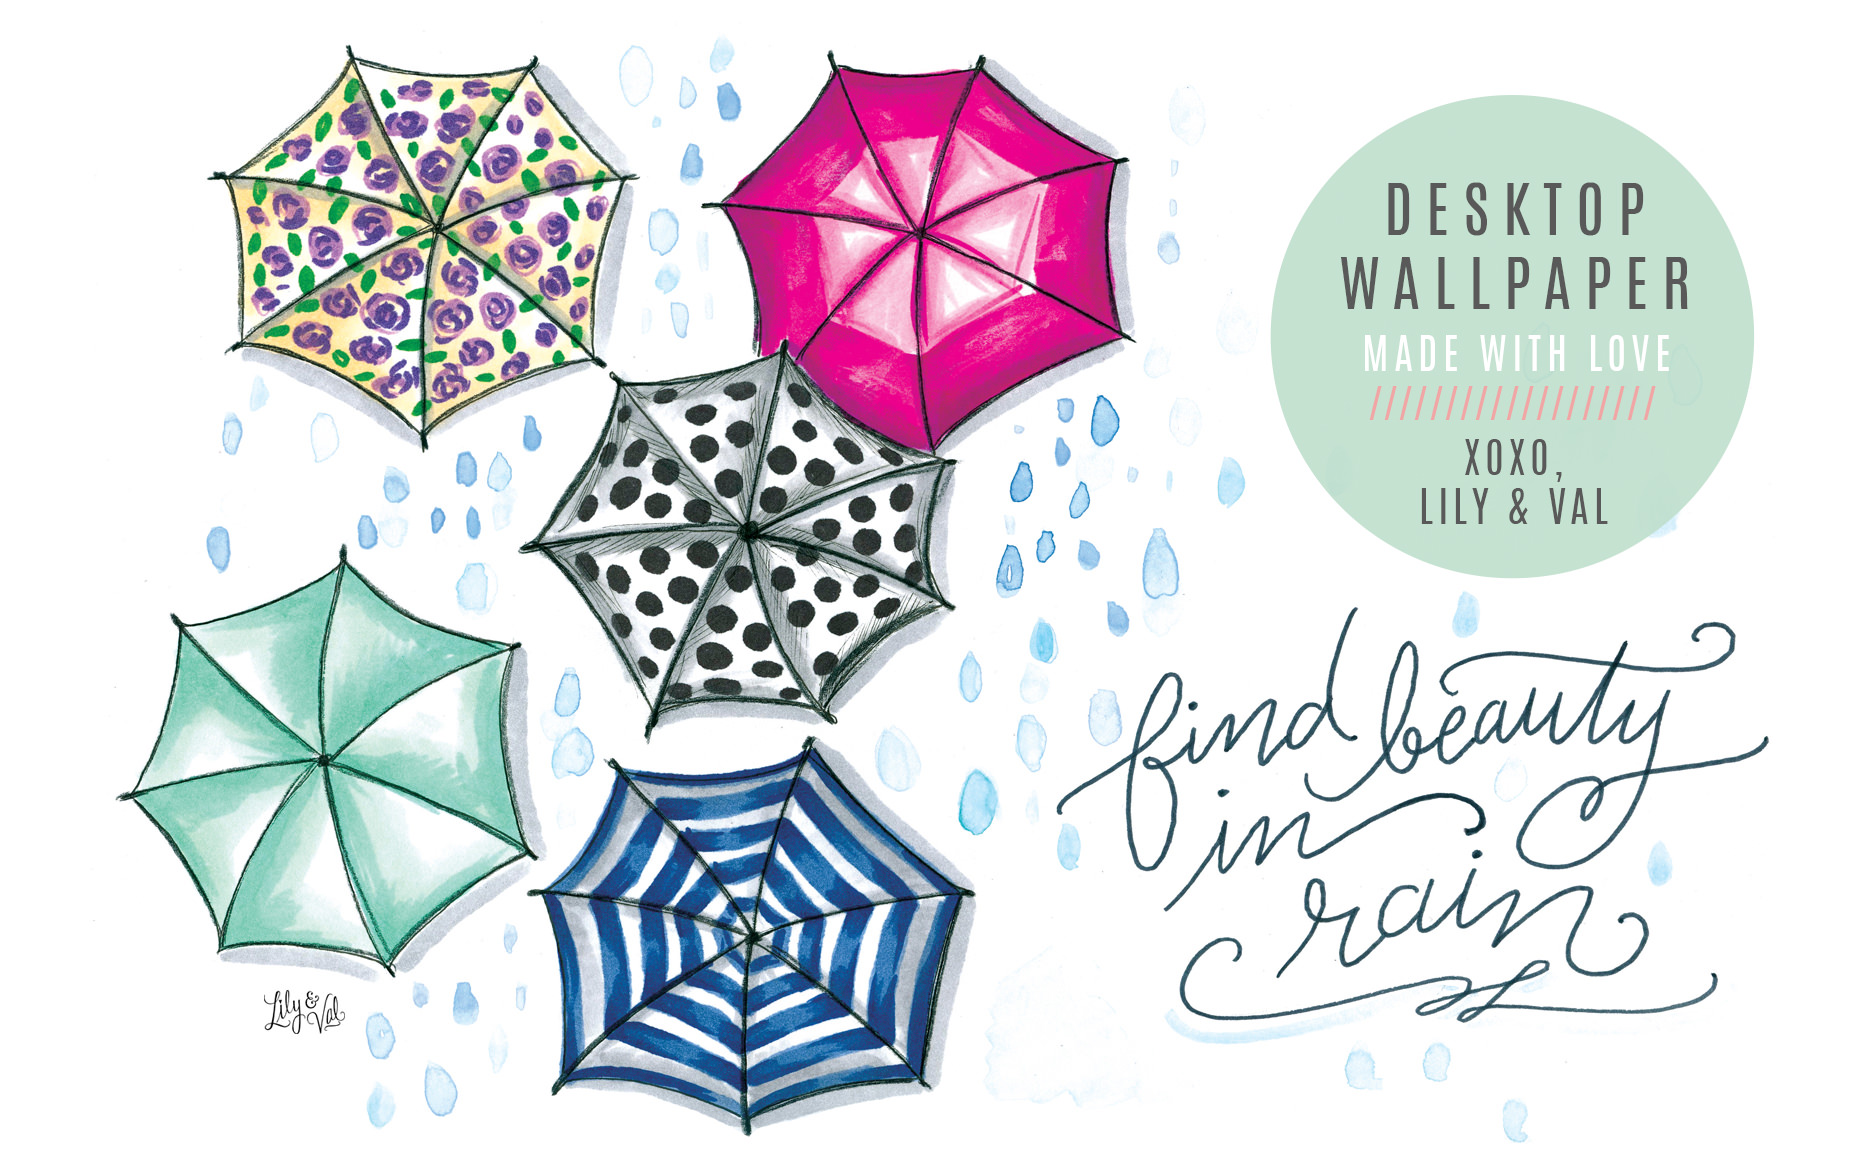 """Find Beauty in Rain"" free desktop for April on Lily & Val Living!"